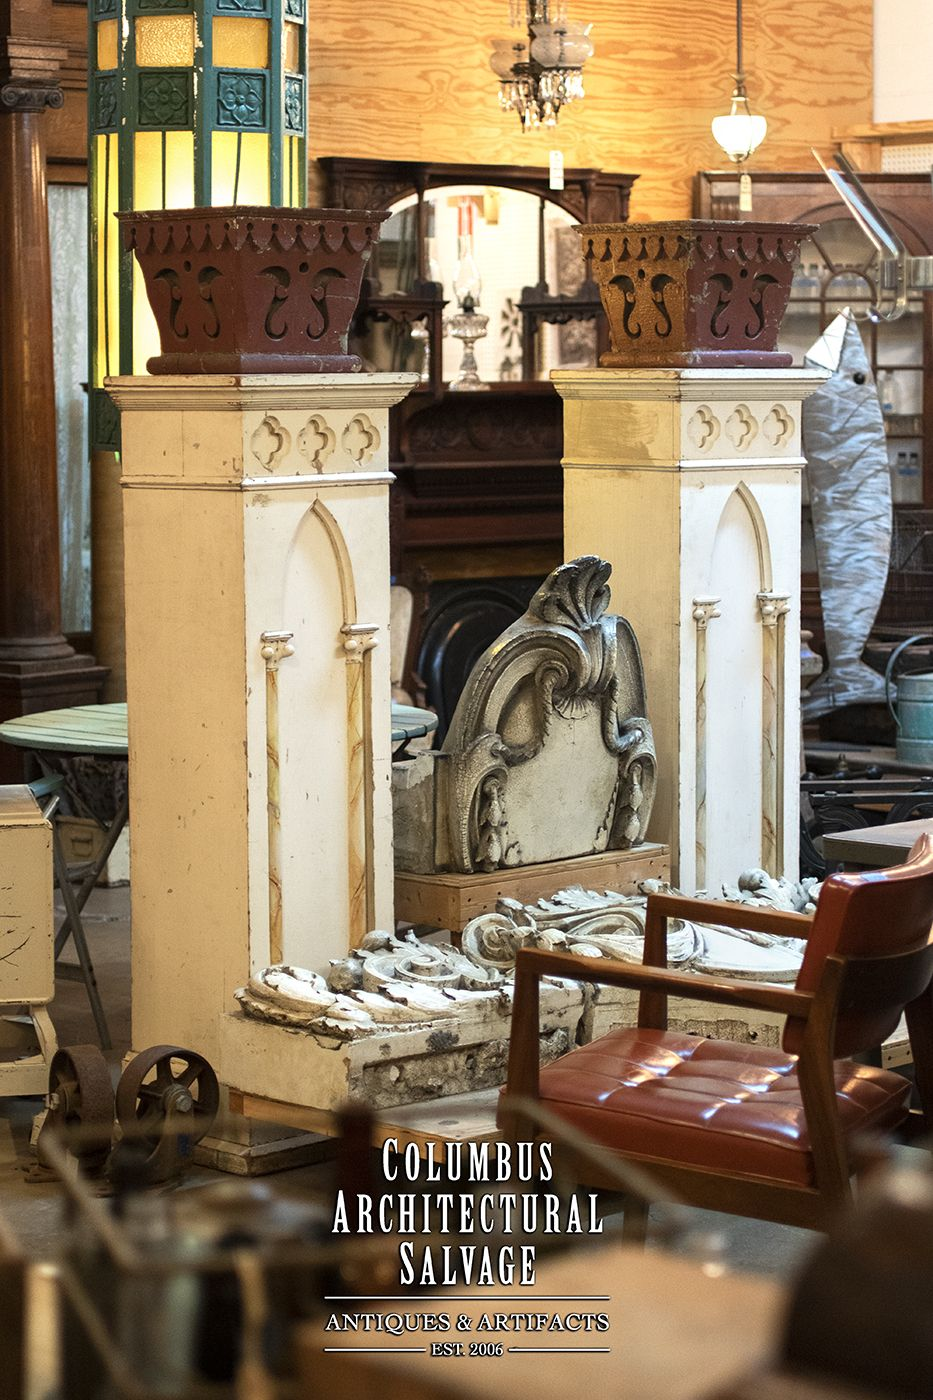 Large Gothic Pedestal In 2020 Architectural Salvage